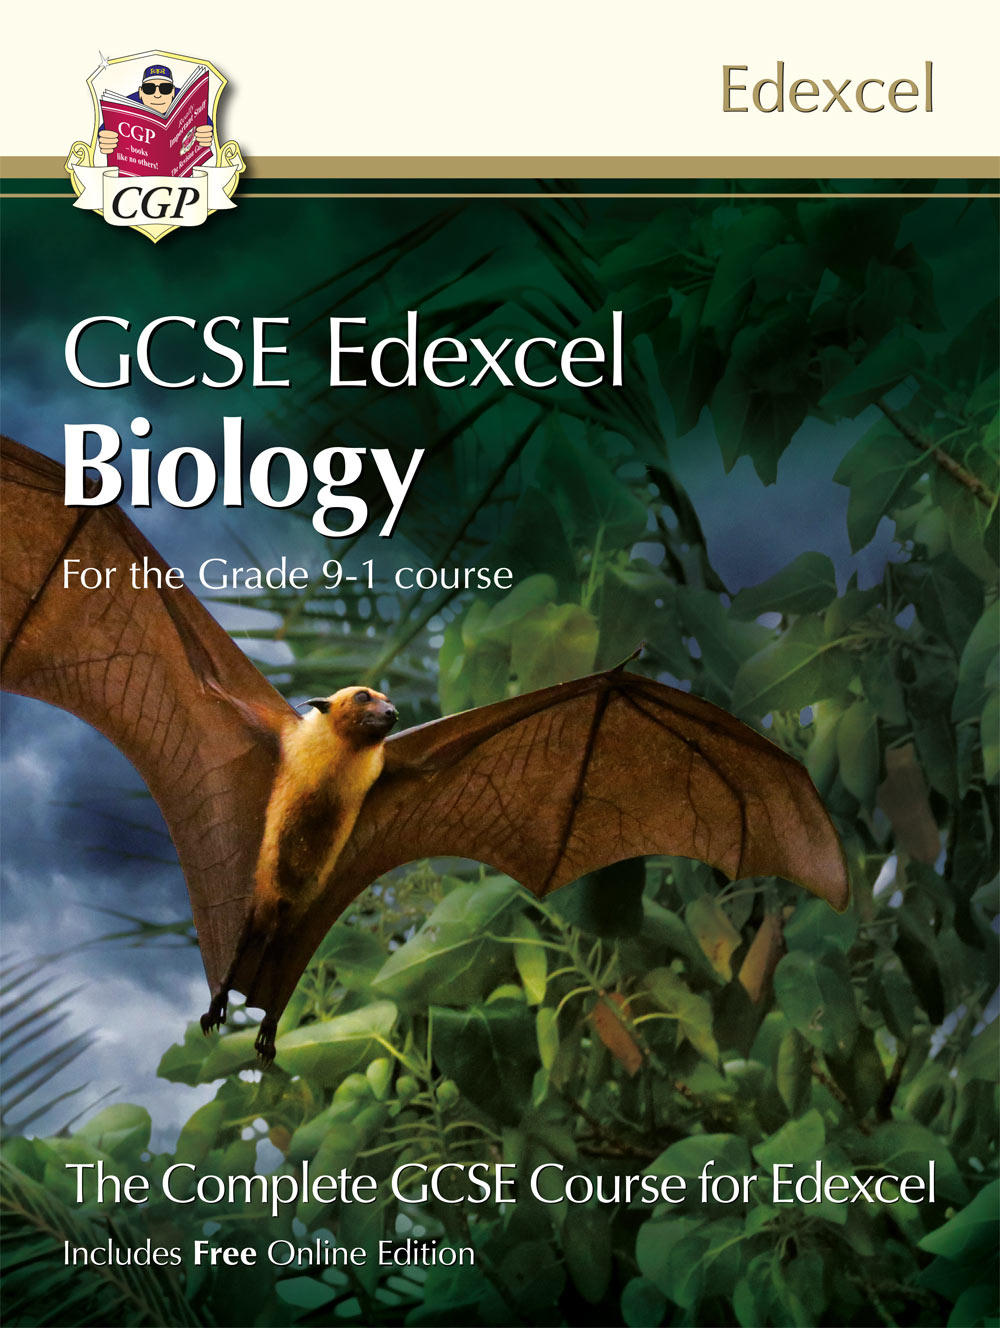 BETB41 - Grade 9-1 GCSE Biology for Edexcel: Student Book with Online Edition